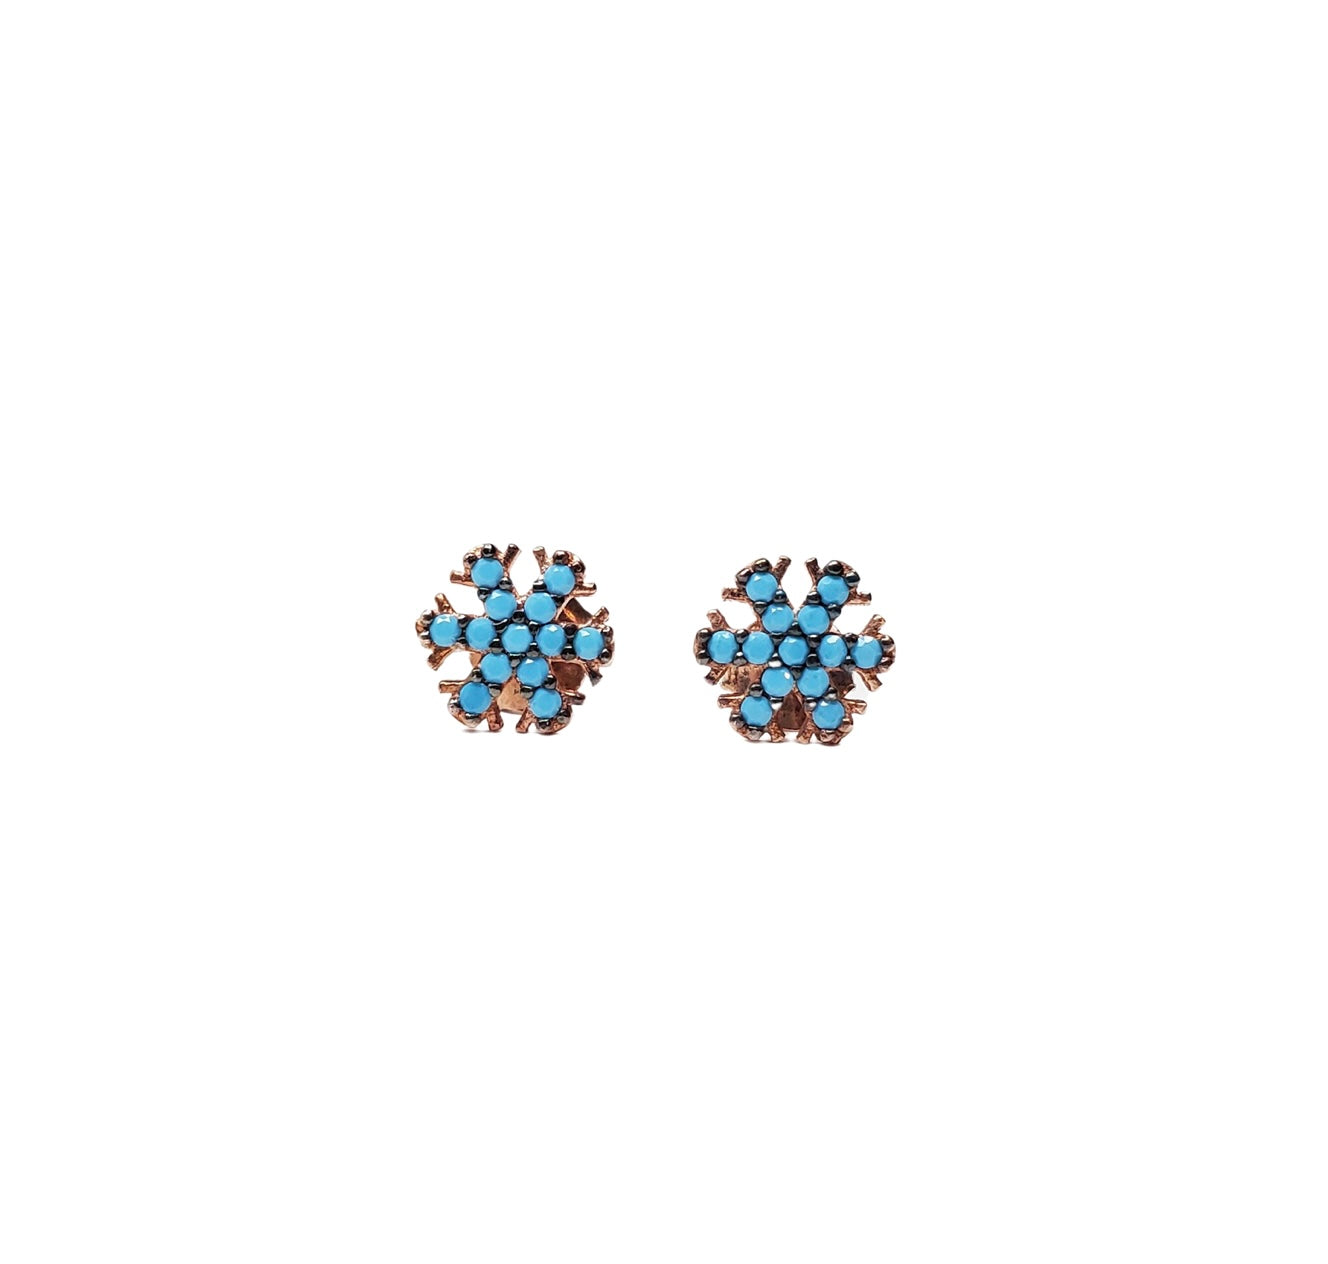 Turquoise zirconia snowflake stud earrings.